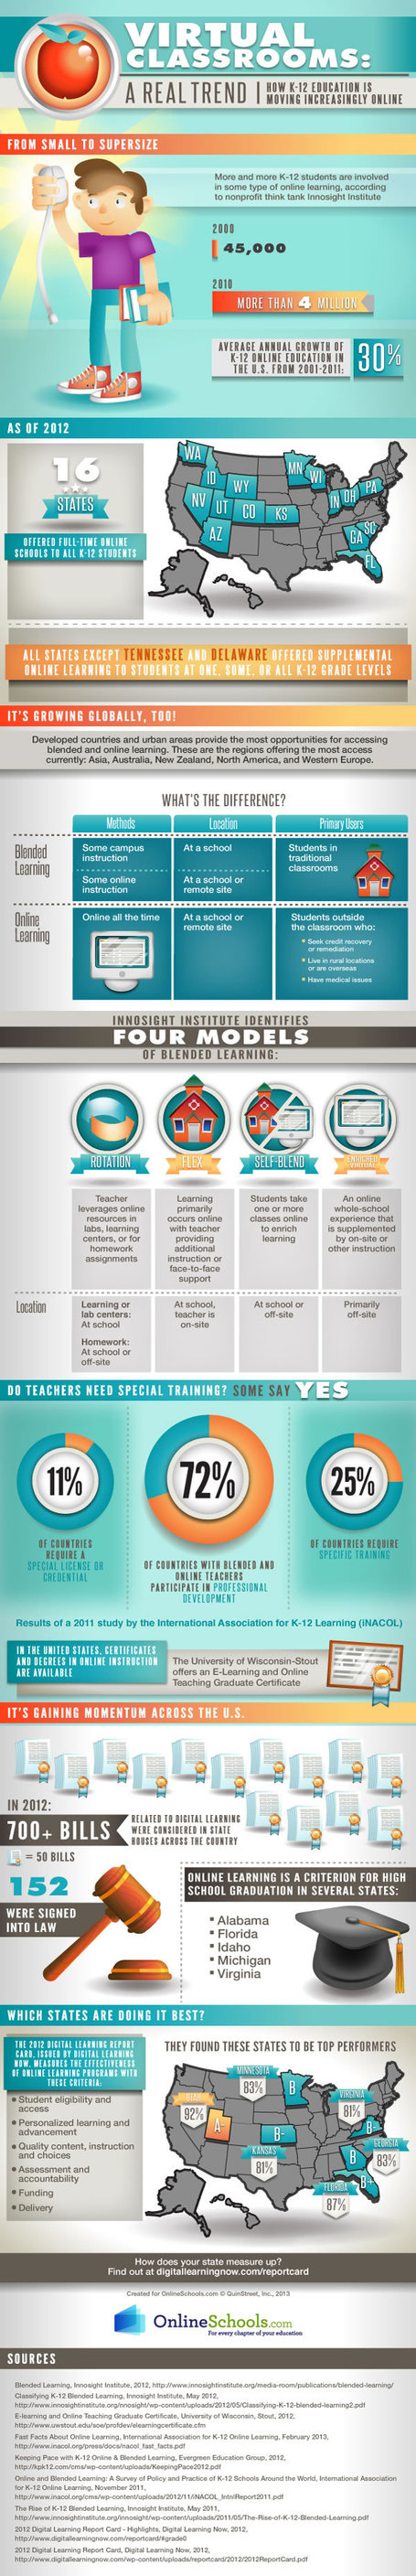 K-12 Distance Learning and Blended Learning: Trends on the Rise? | Educational Leadership and Technology | Scoop.it